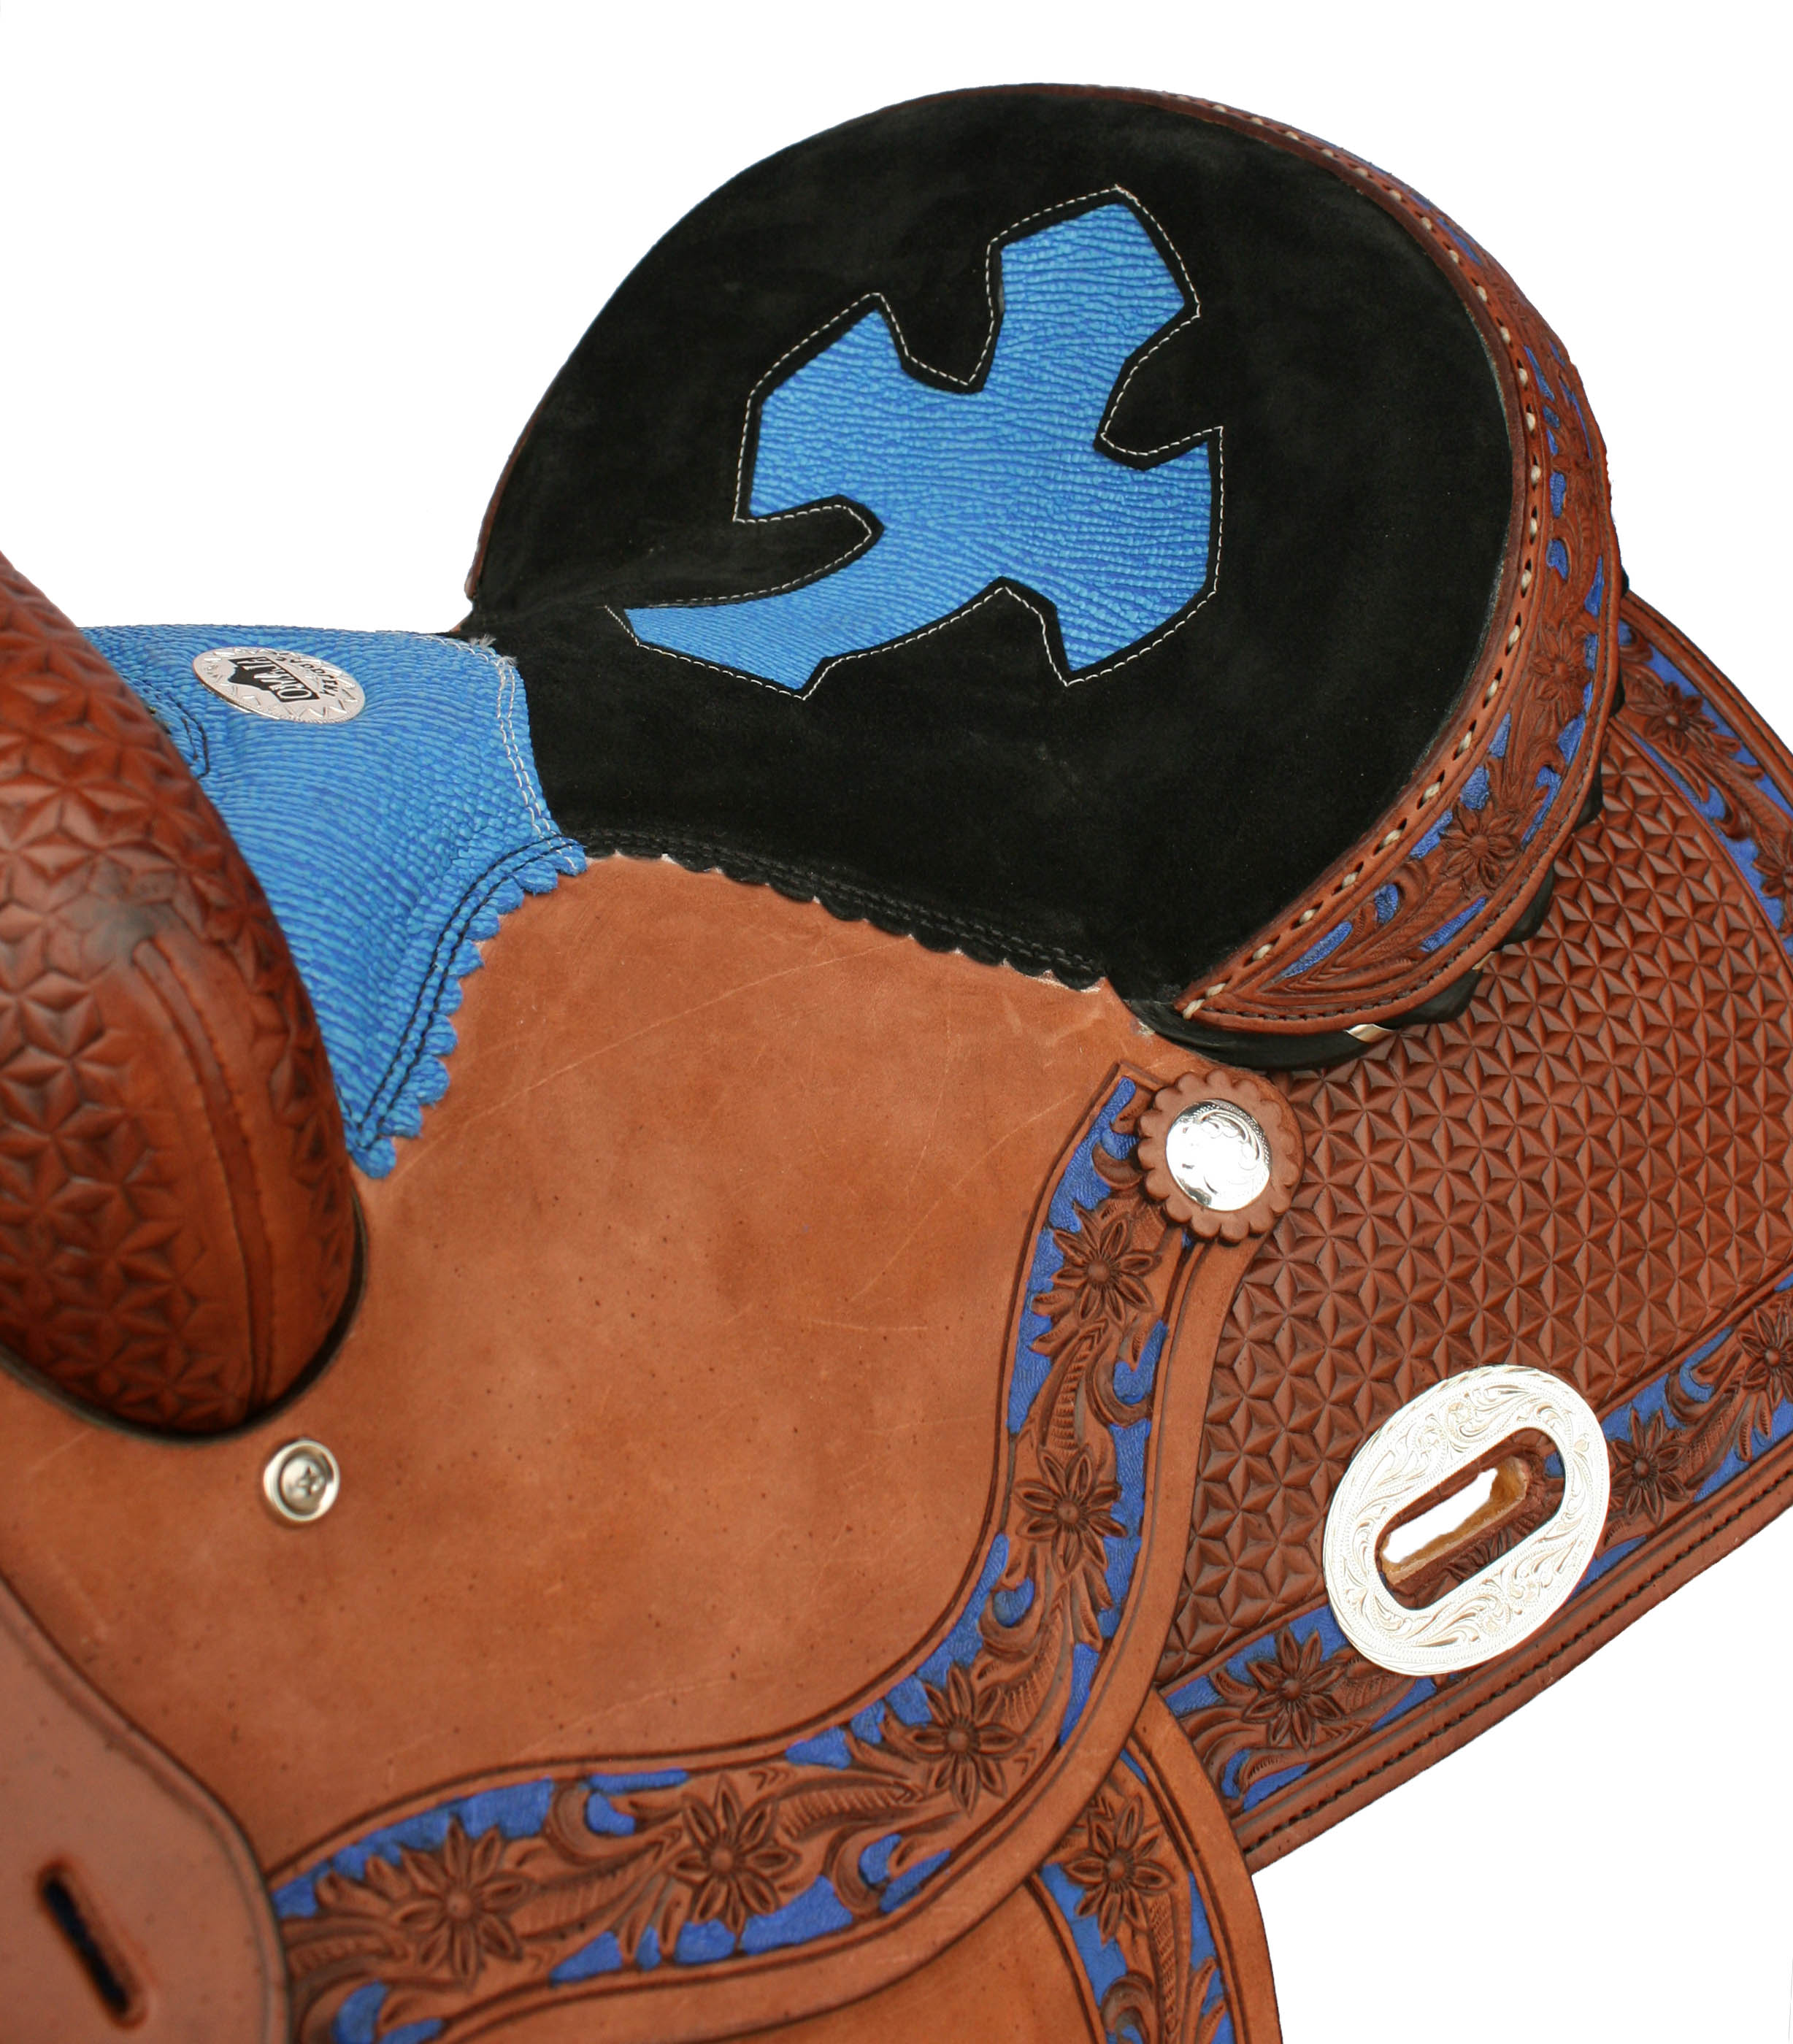 TOAST BARREL SADDLE, BLUE SHARK INLAID SEAT